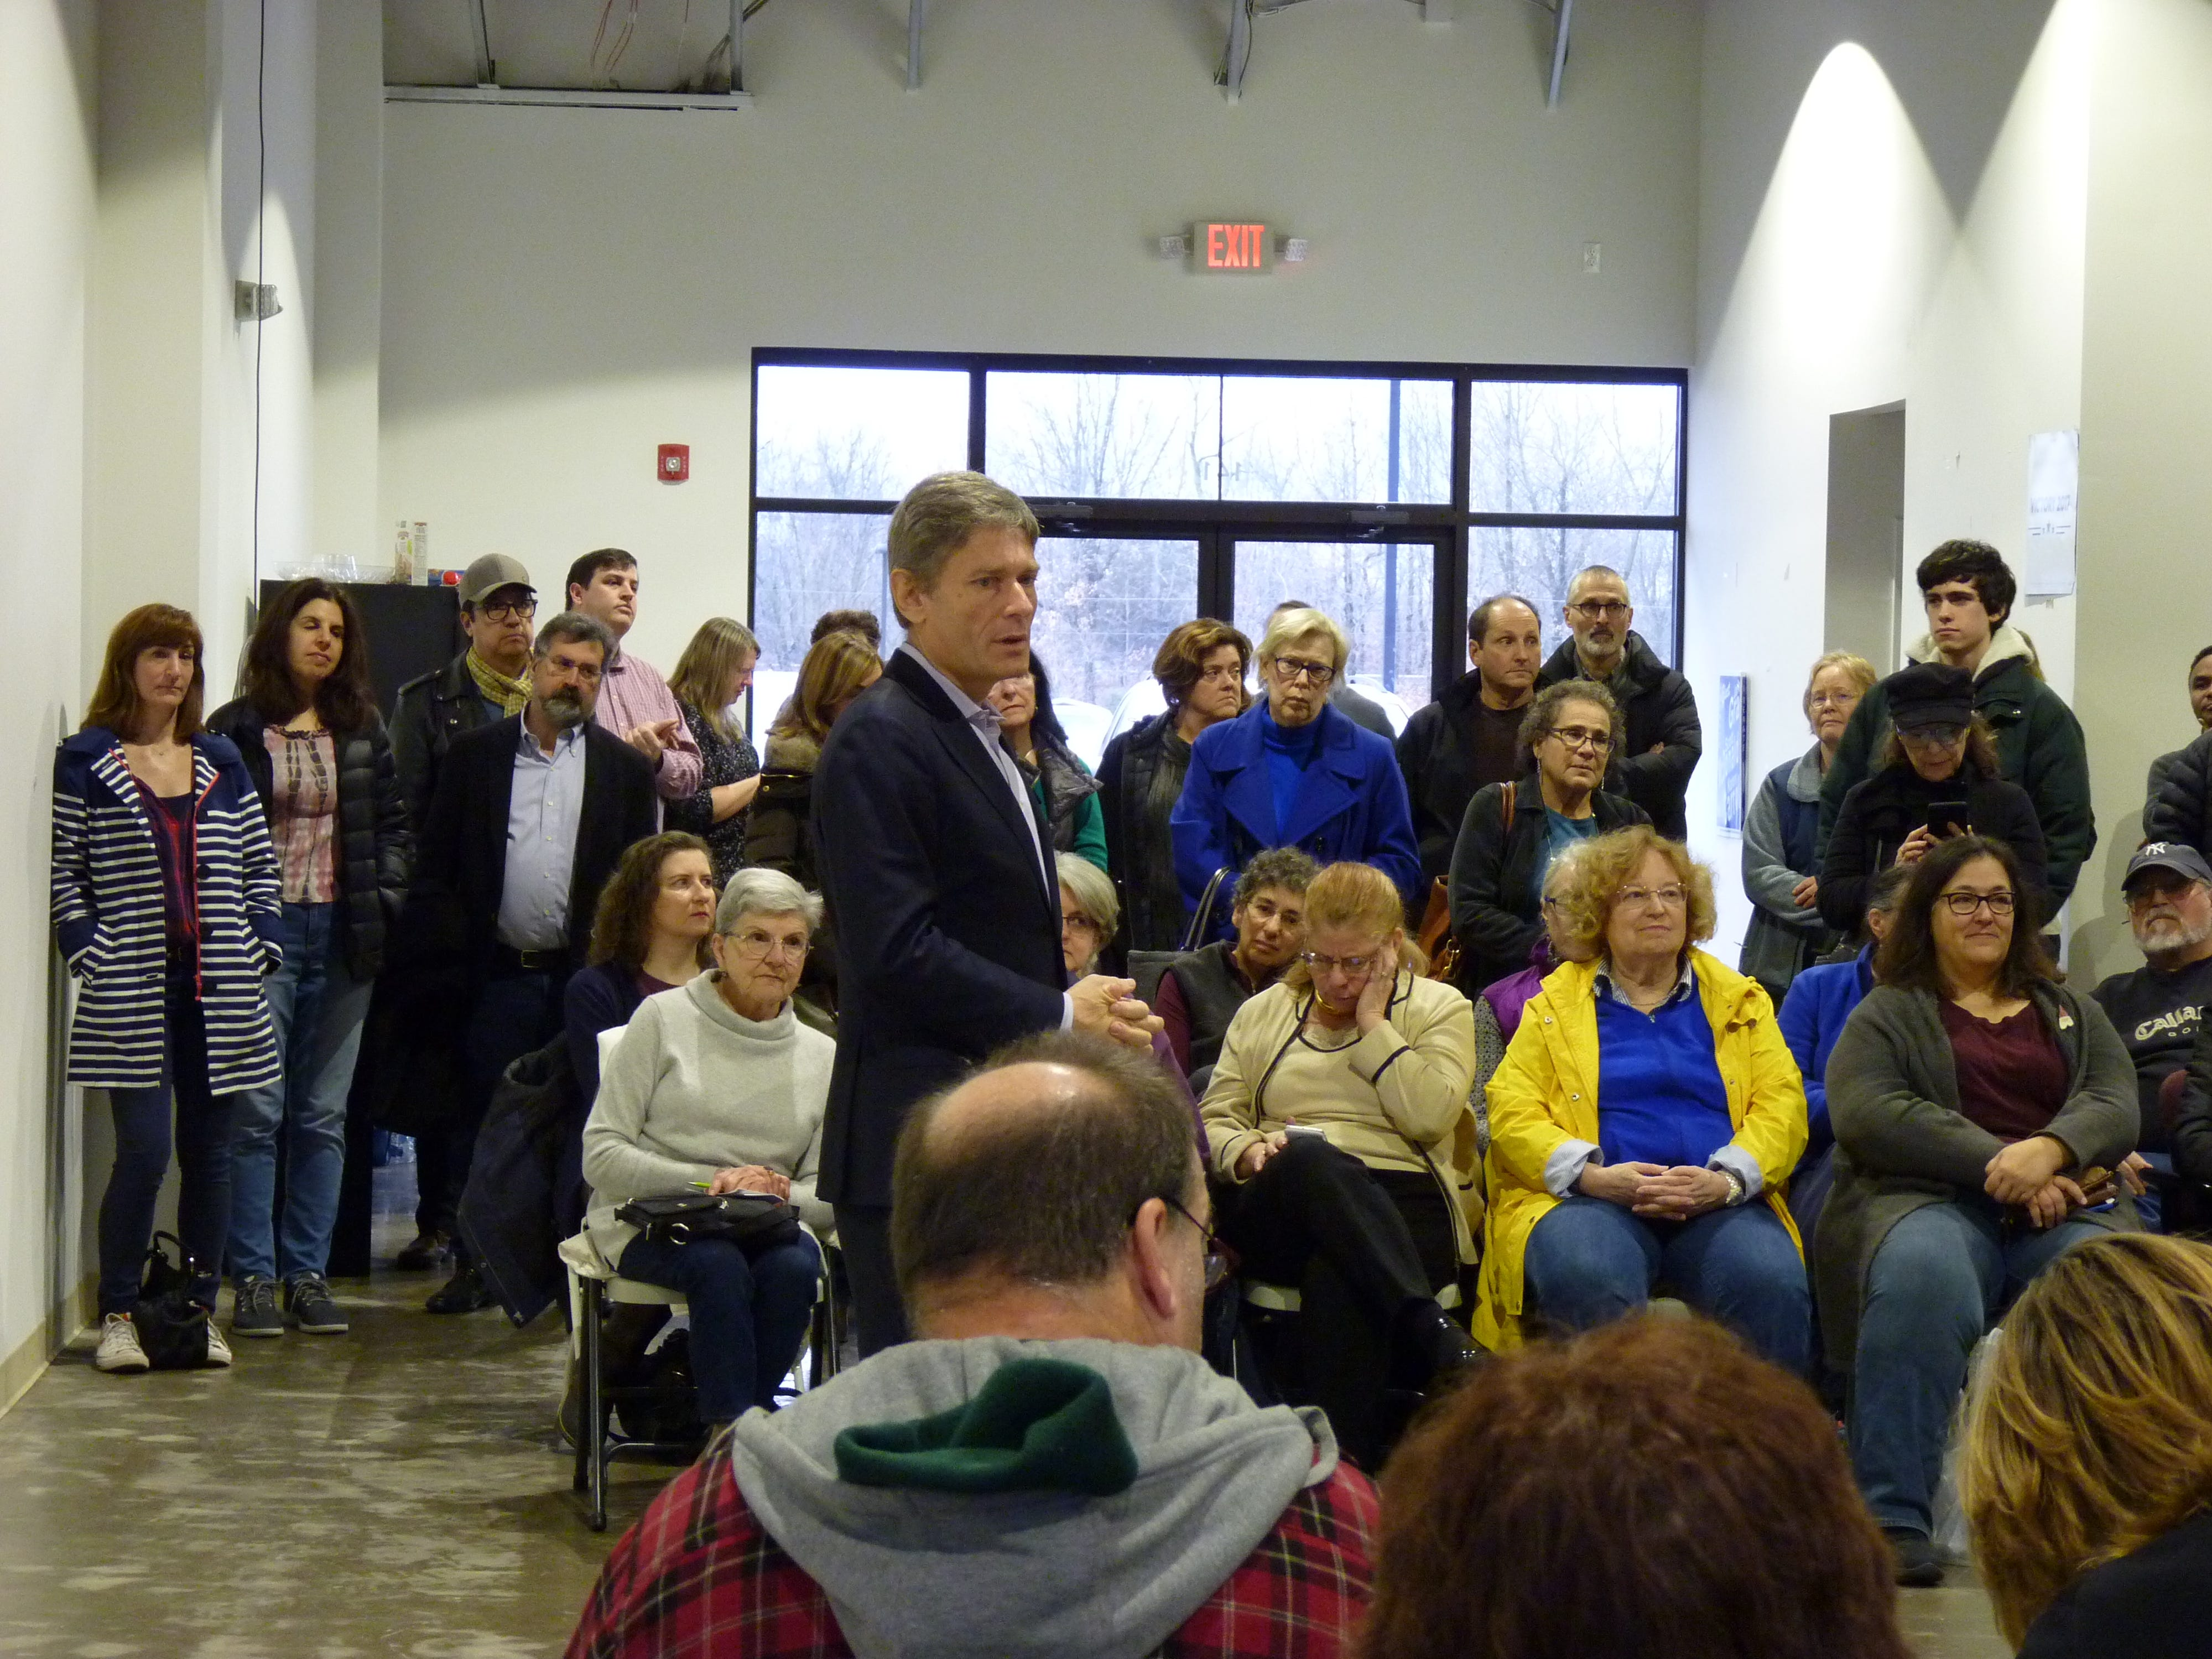 Tom Malinowski holds Somerville town hall    the description for each should be: Congressman-elect Tom Malinowski held a town hall on Saturday, Dec. 15 in Somerville to speak to his constituents on issues regarding transportation, health care, immigration.